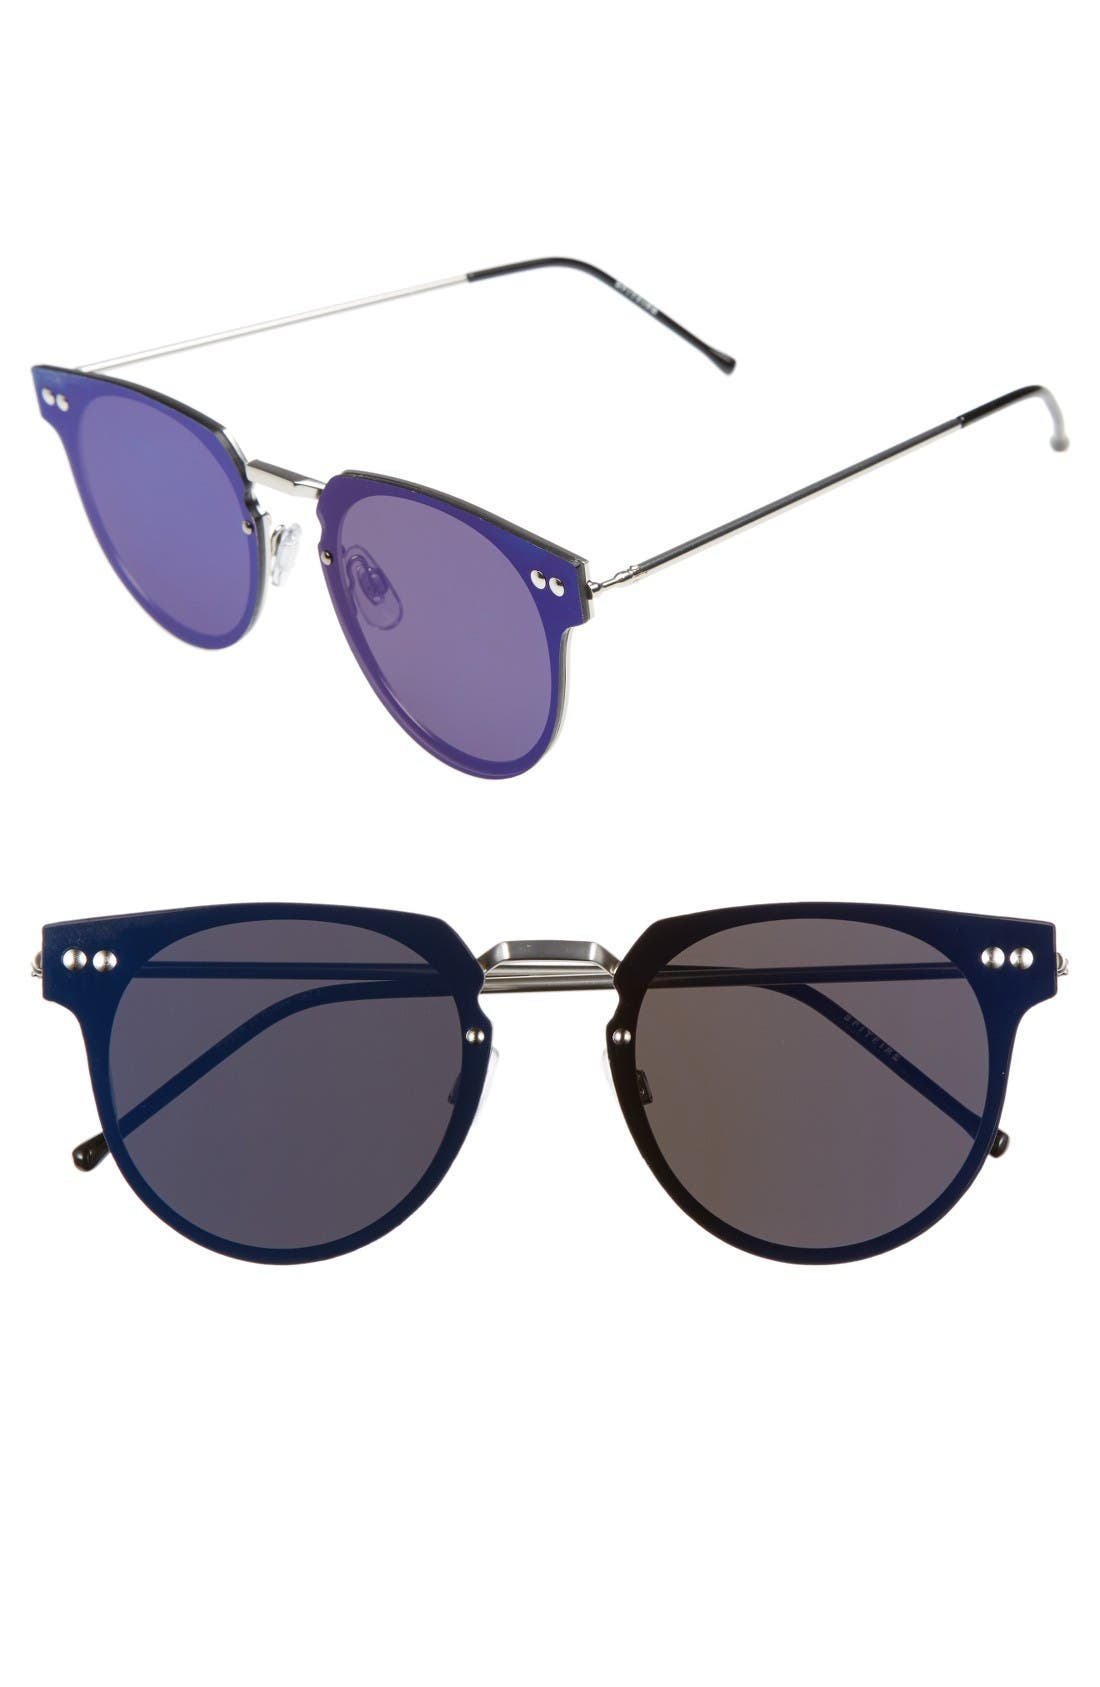 Spitfire Cyber 48mm Mirrored Lens Sunglasses